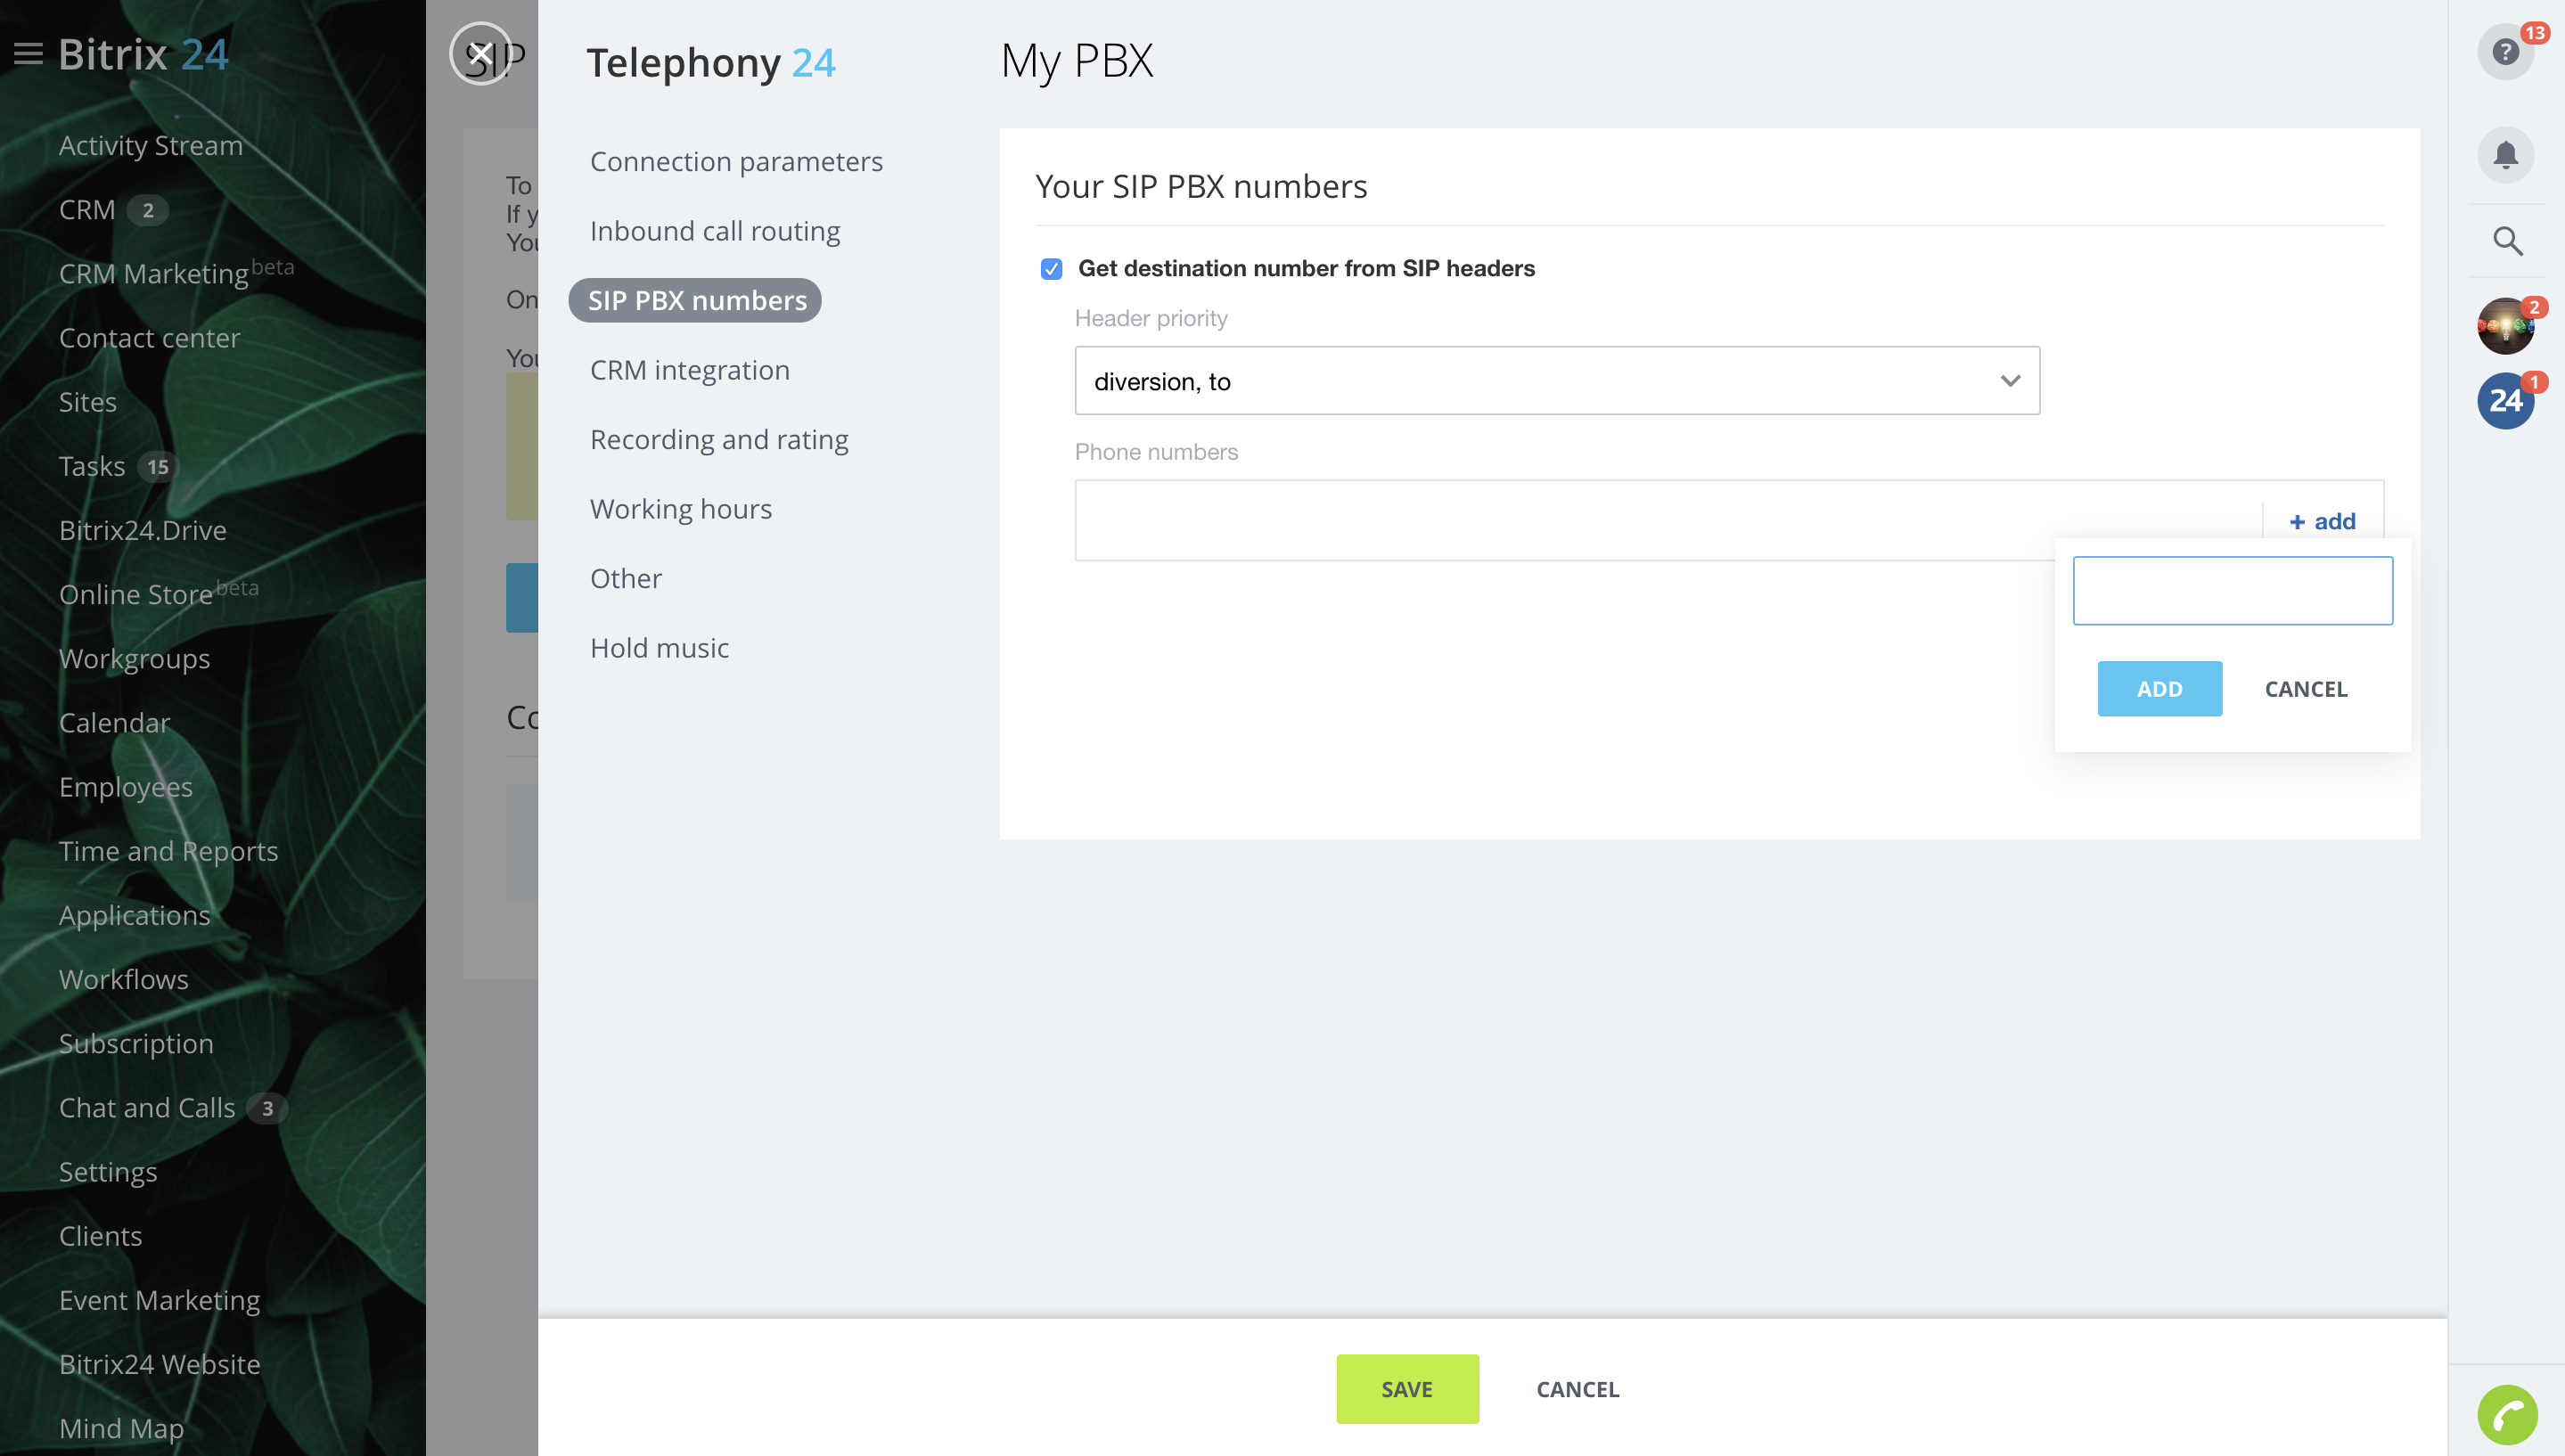 Call tracking: SIP PBX numbers